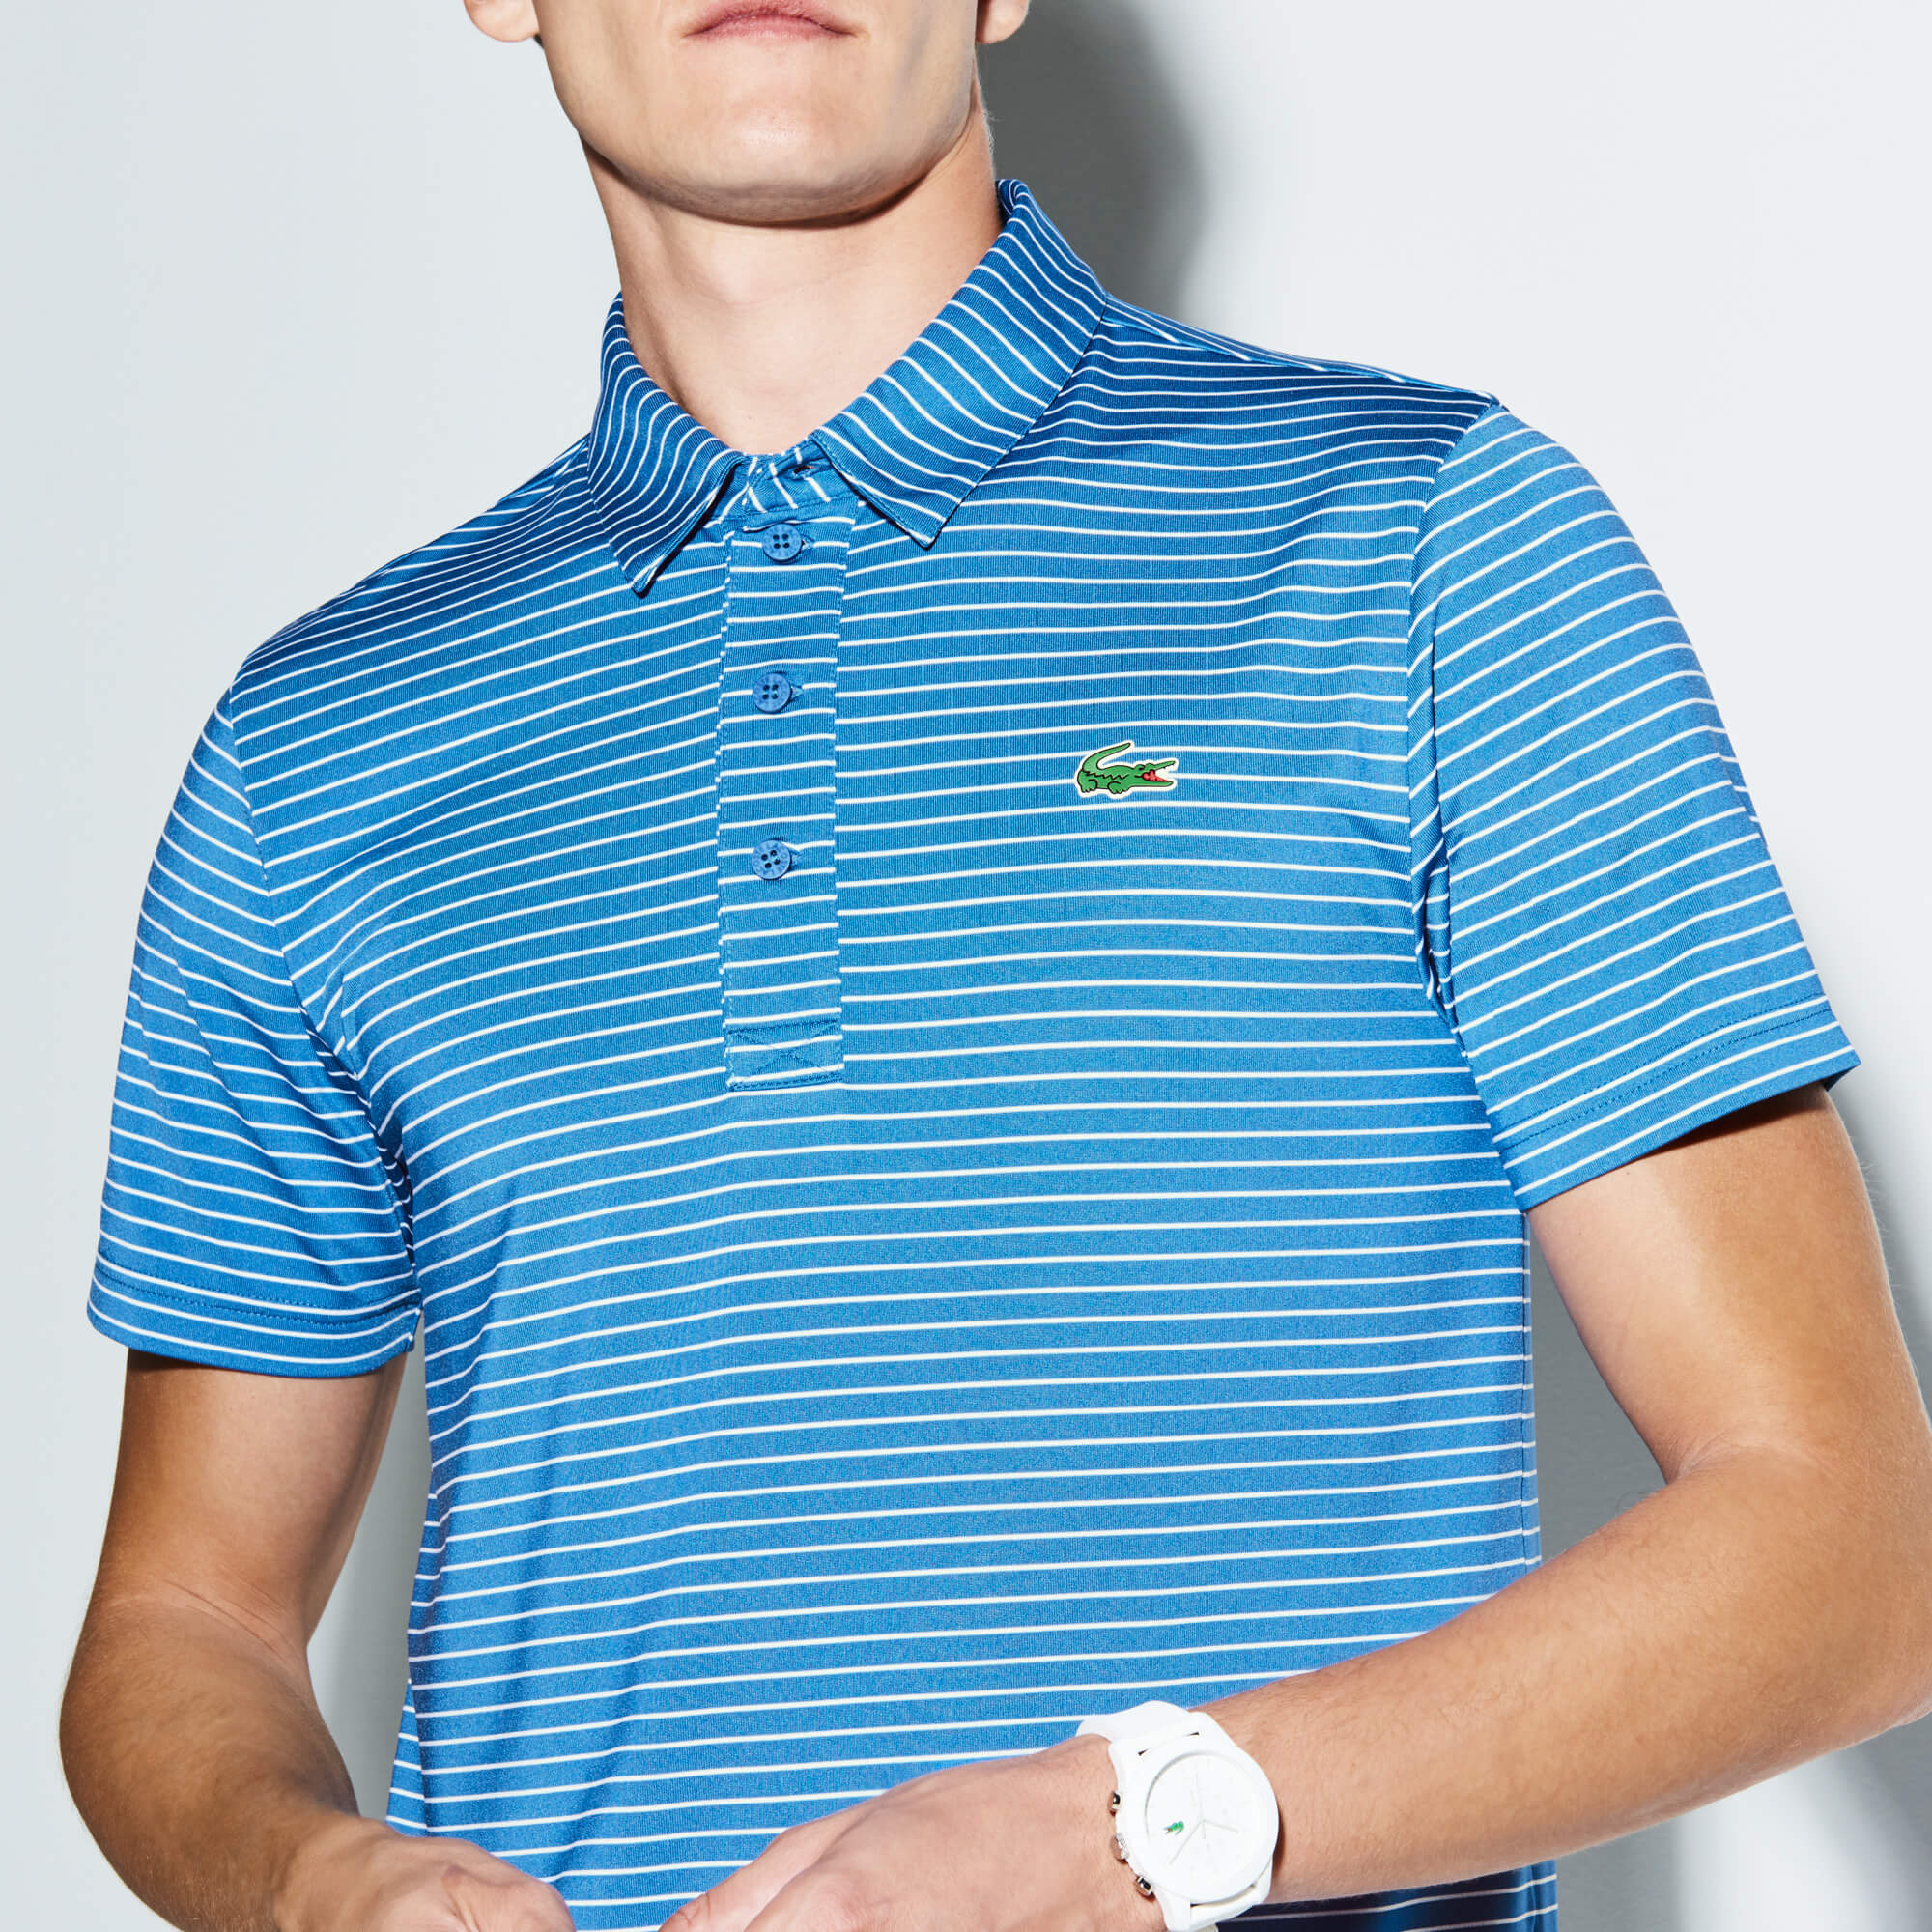 Men's Lacoste SPORT Striped Stretch Technical Jersey Golf Polo